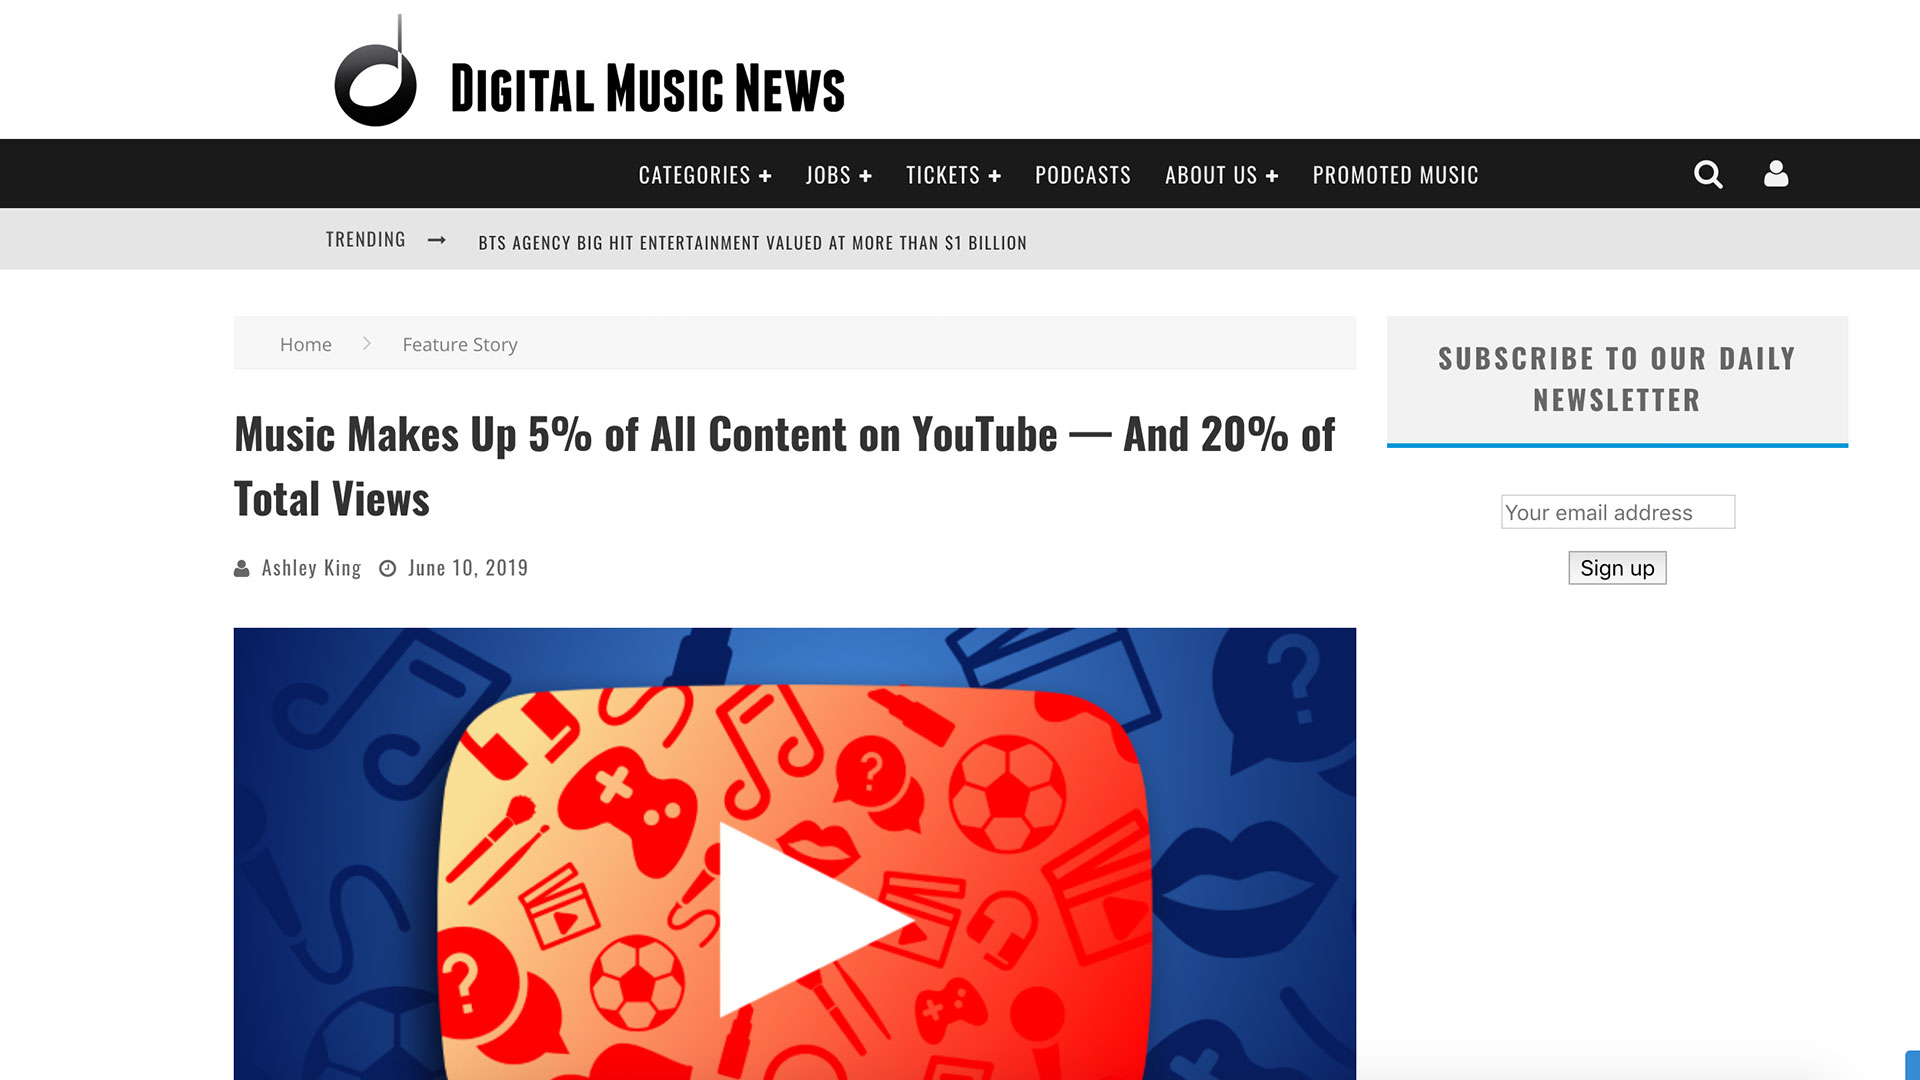 Fairness Rocks News Music Makes Up 5% of All Content on YouTube — And 20% of Total Views